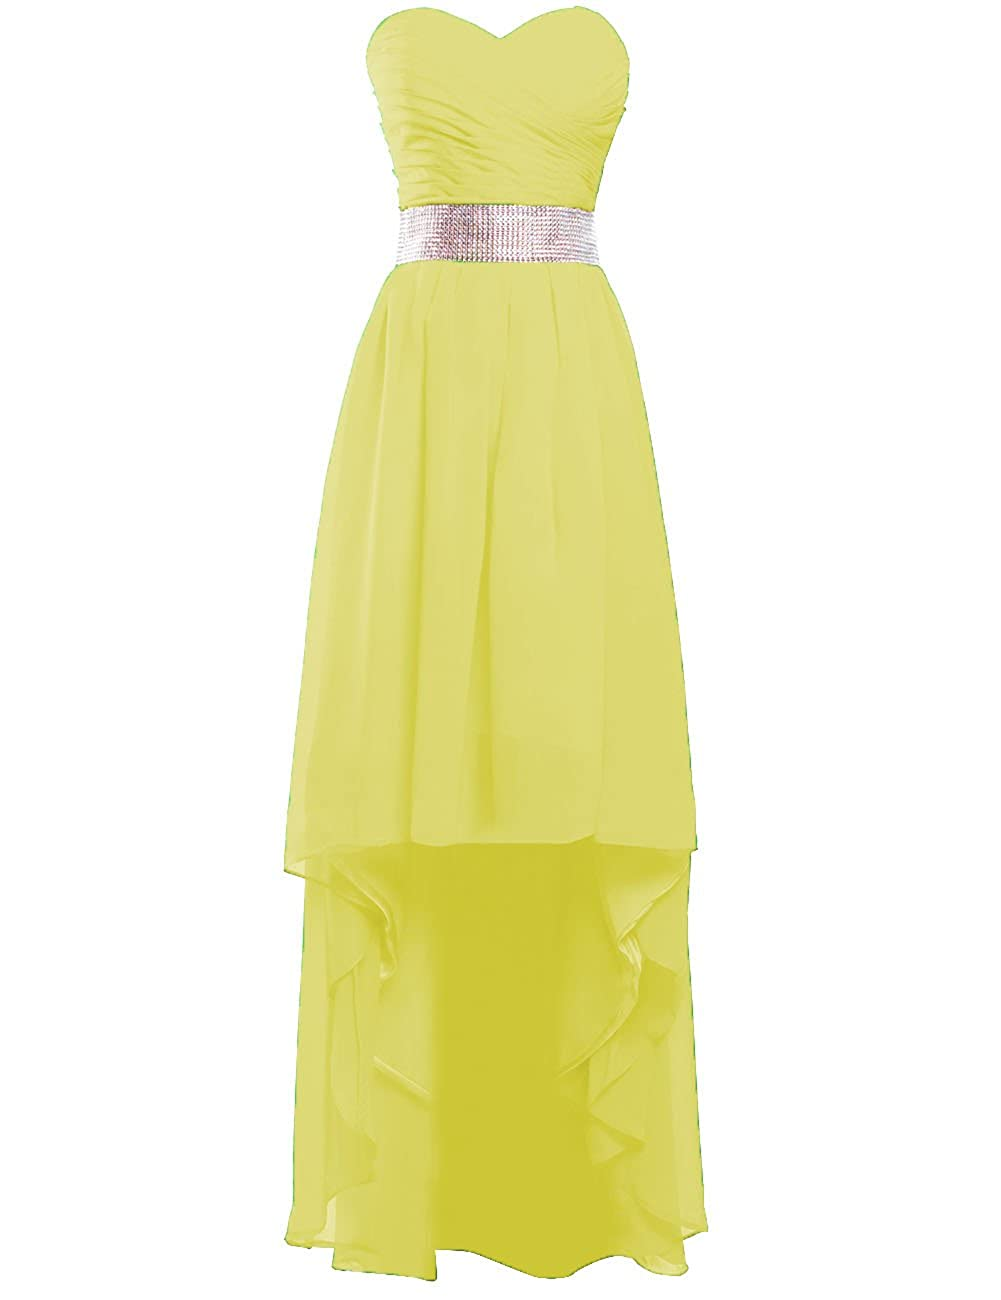 Yellow EDressy Women's High Low Bridesmaid Dresses Beaded Sweetheart Prom Evening Gowns Long Formal Dress